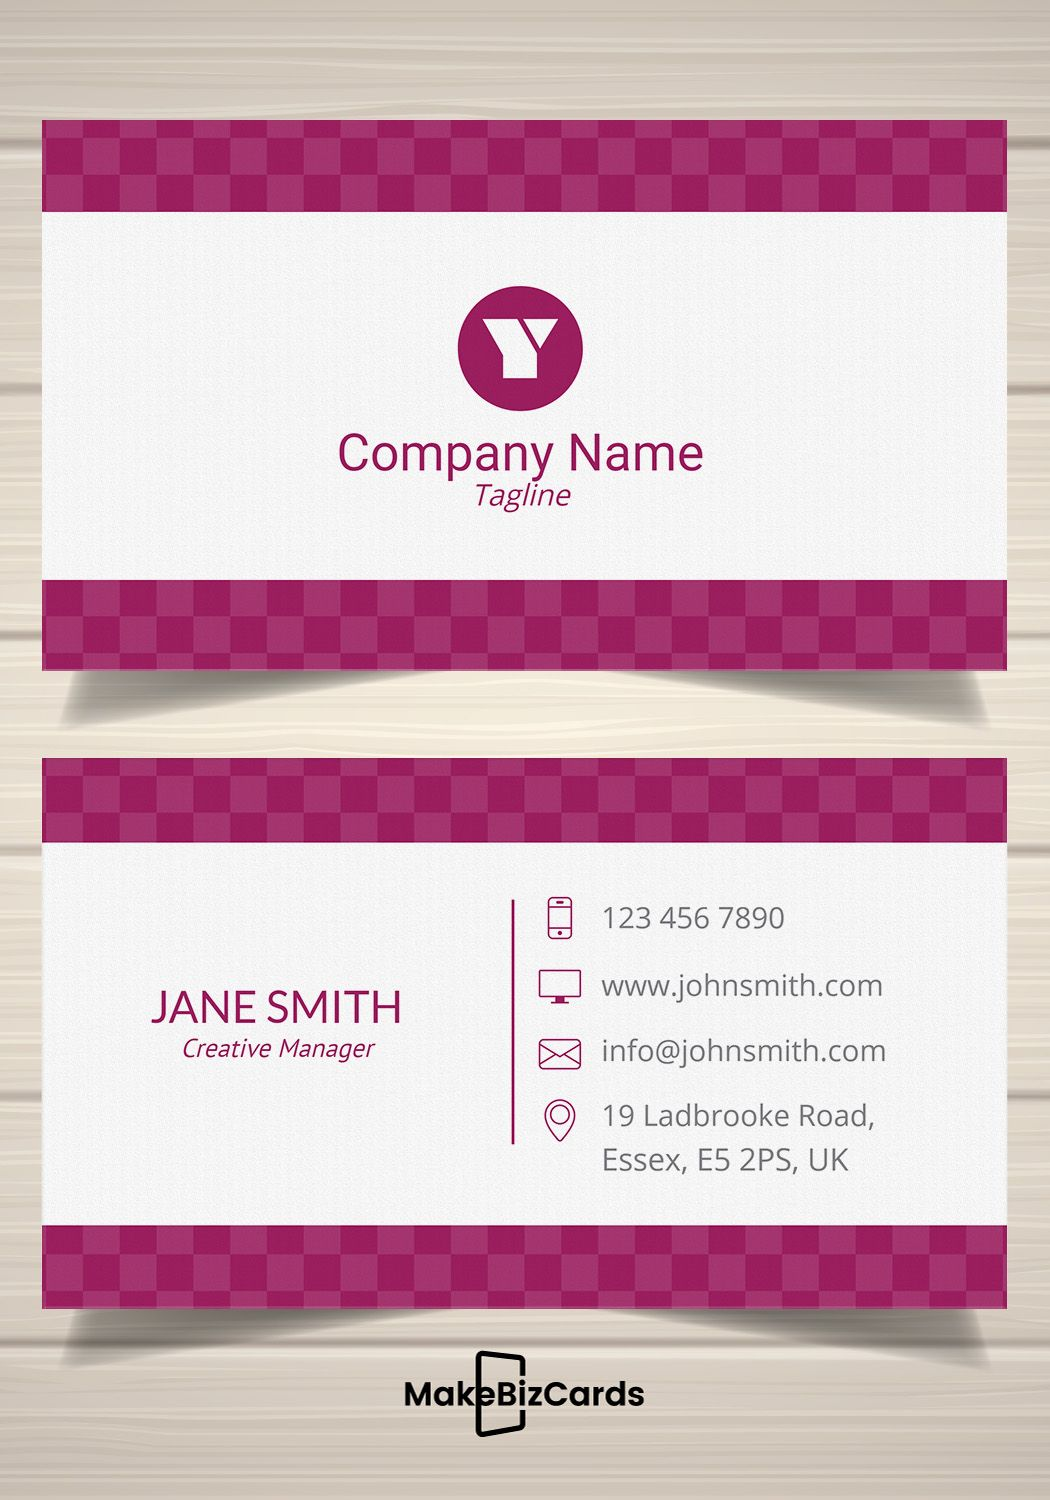 Free Sleek Purple Business Card Template Businesscard Card Template Business Card Template Printing Business Cards